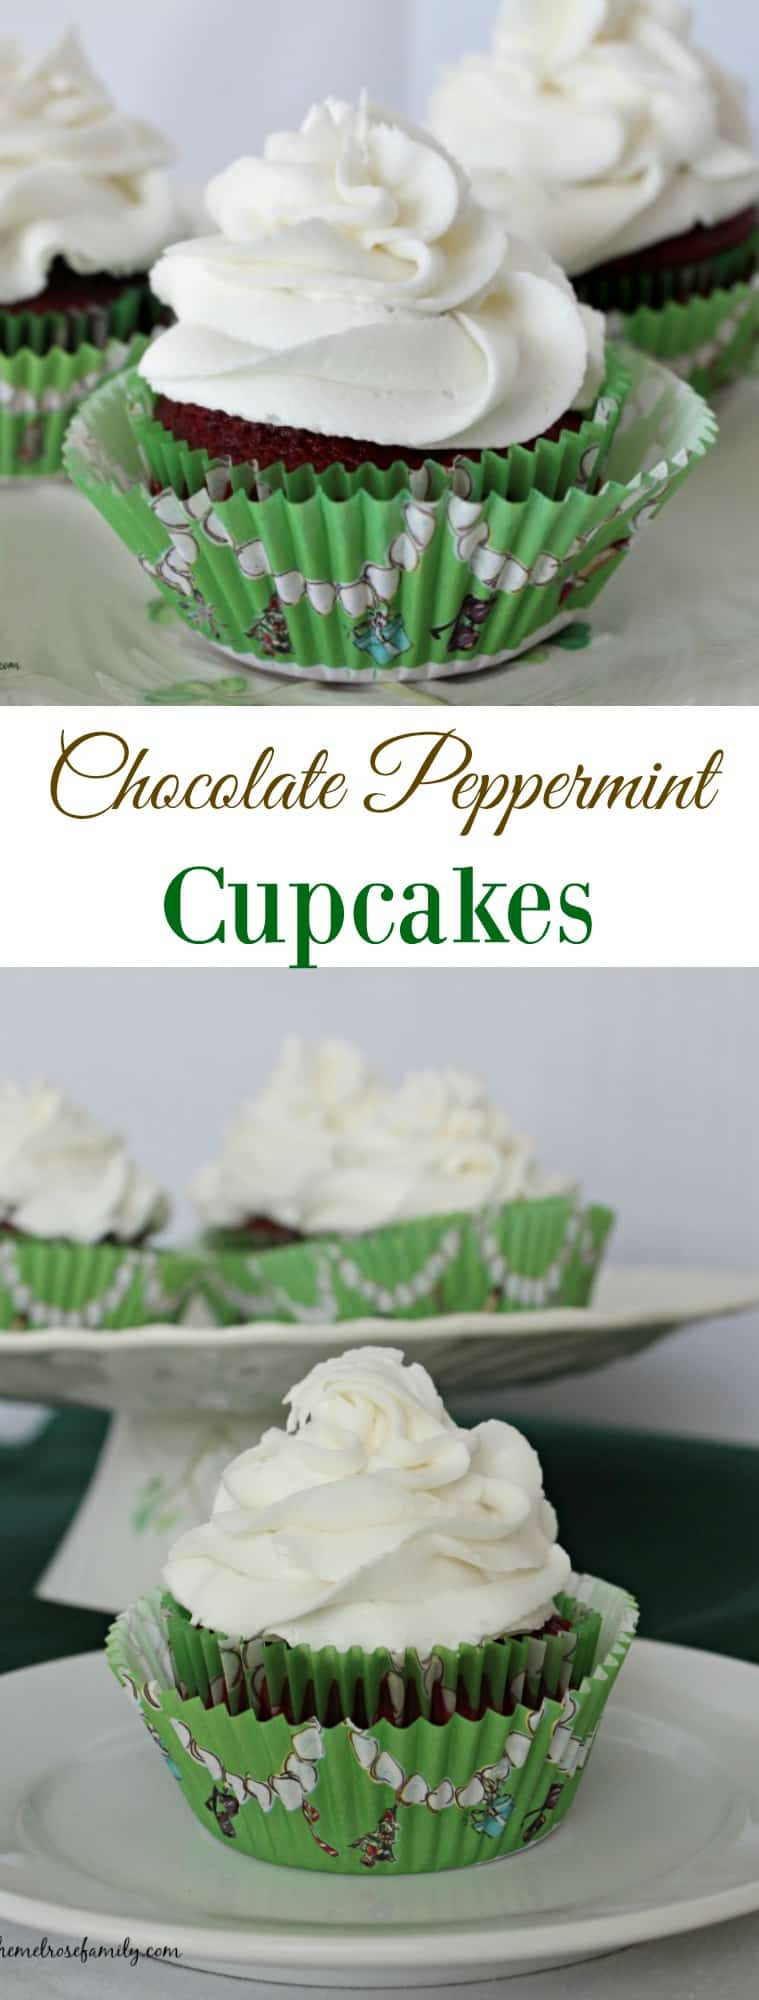 Chocolate Peppermint Cupcakes #cupcakes #peppermint #themelrosefamily